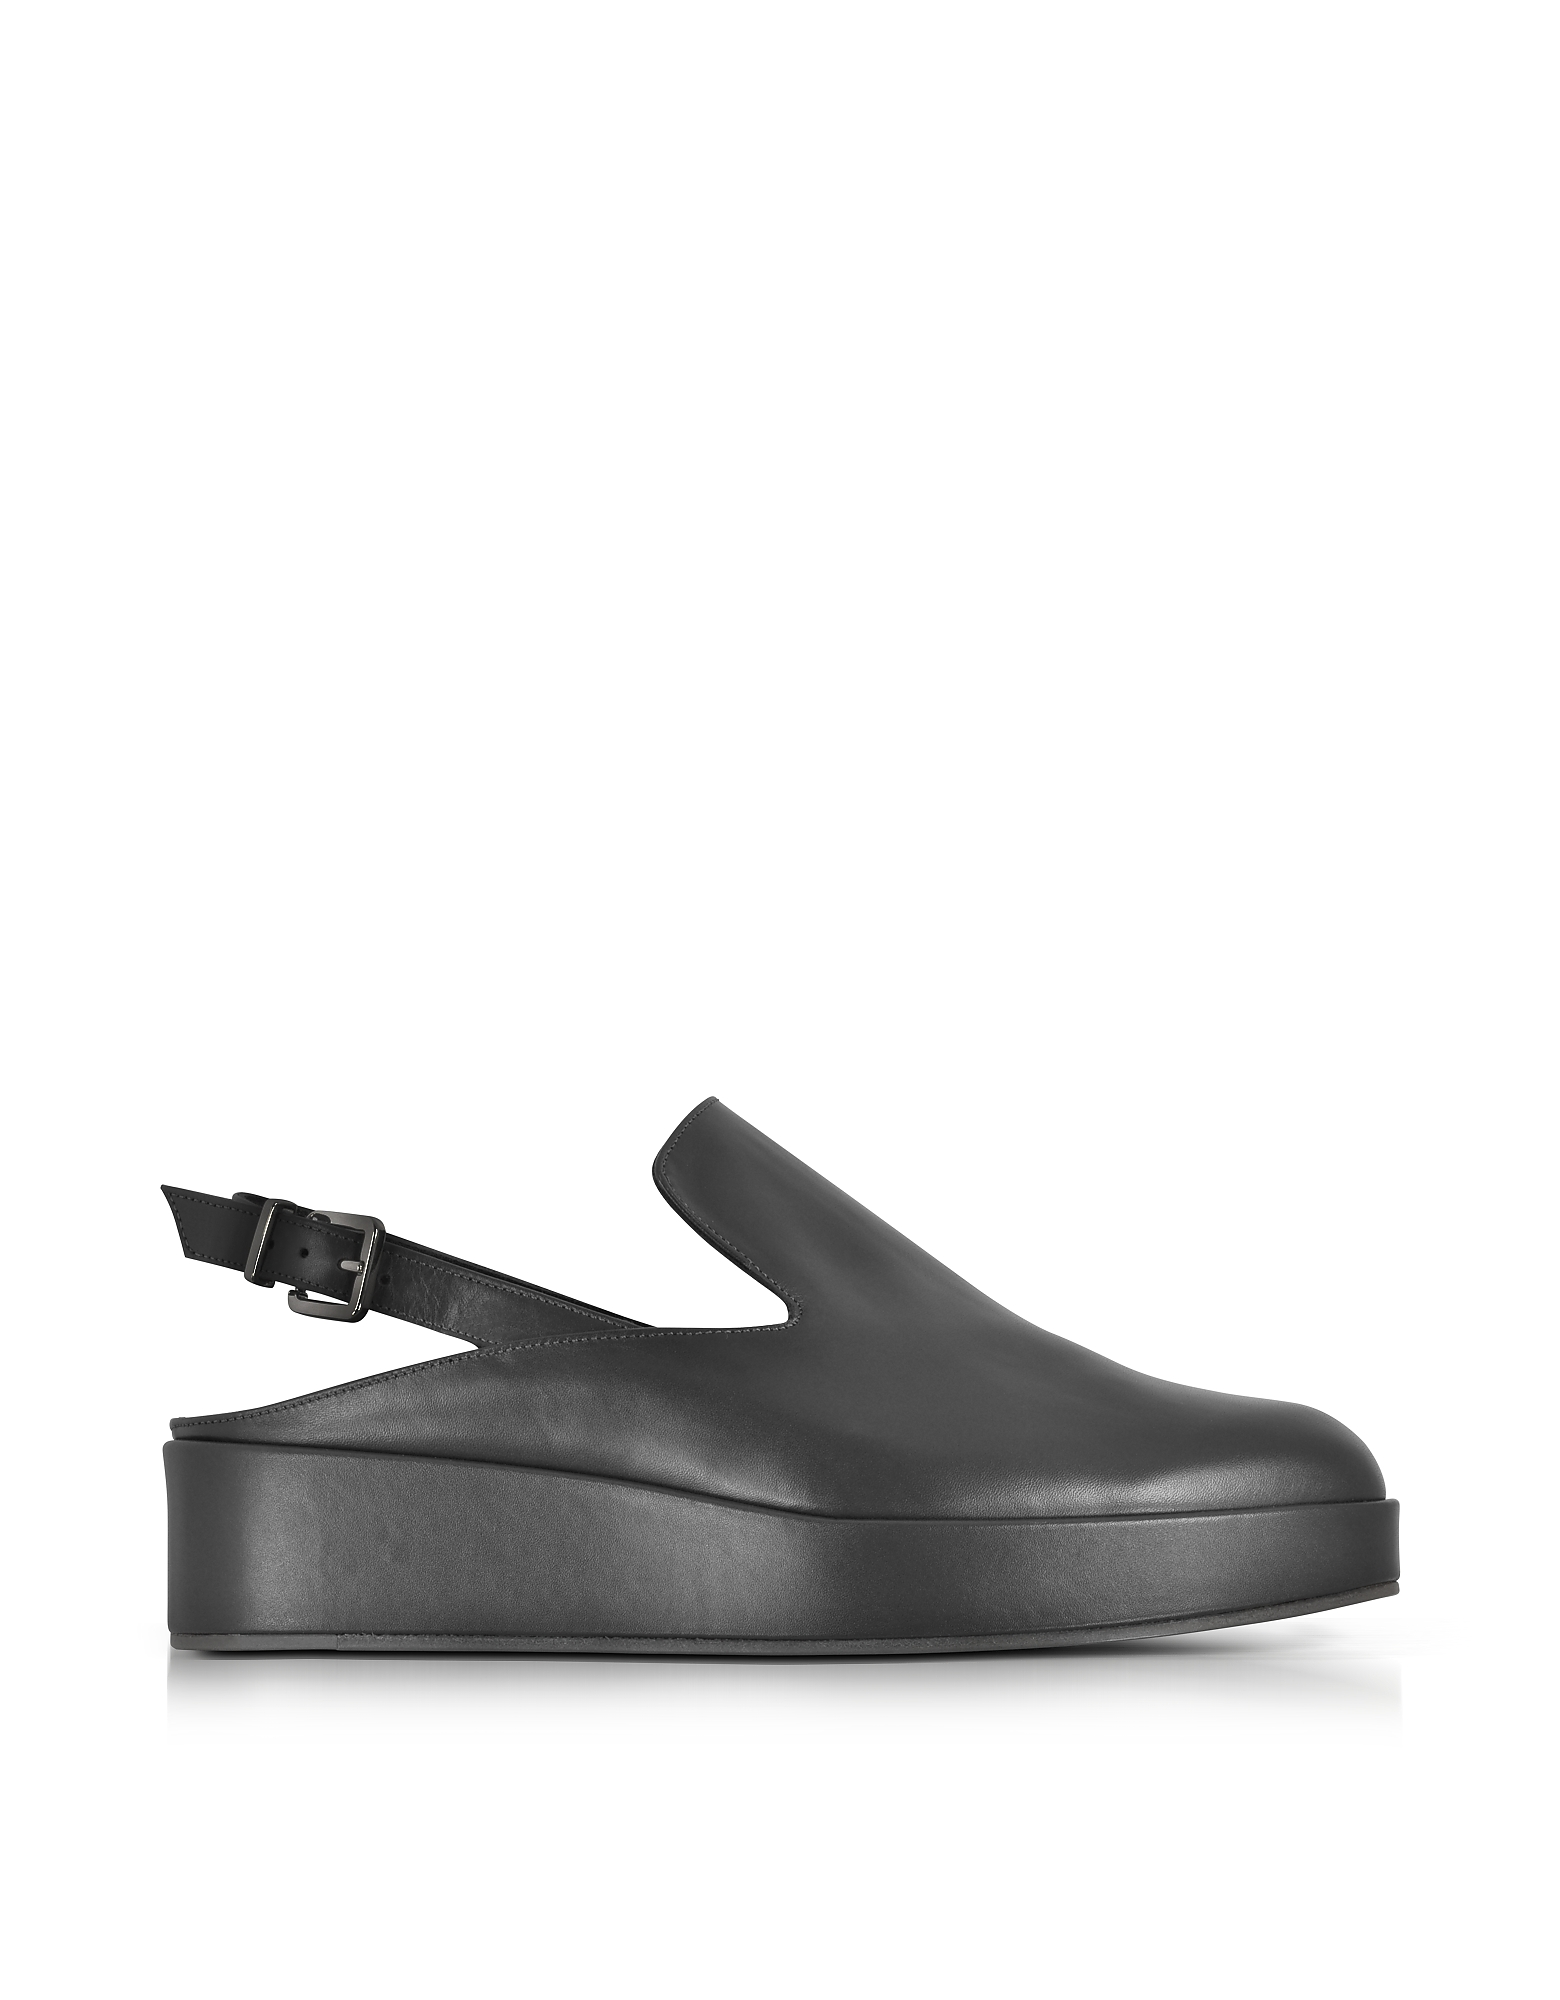 Robert Clergerie Shoes, Nalice Black Leather Flatform Sandals